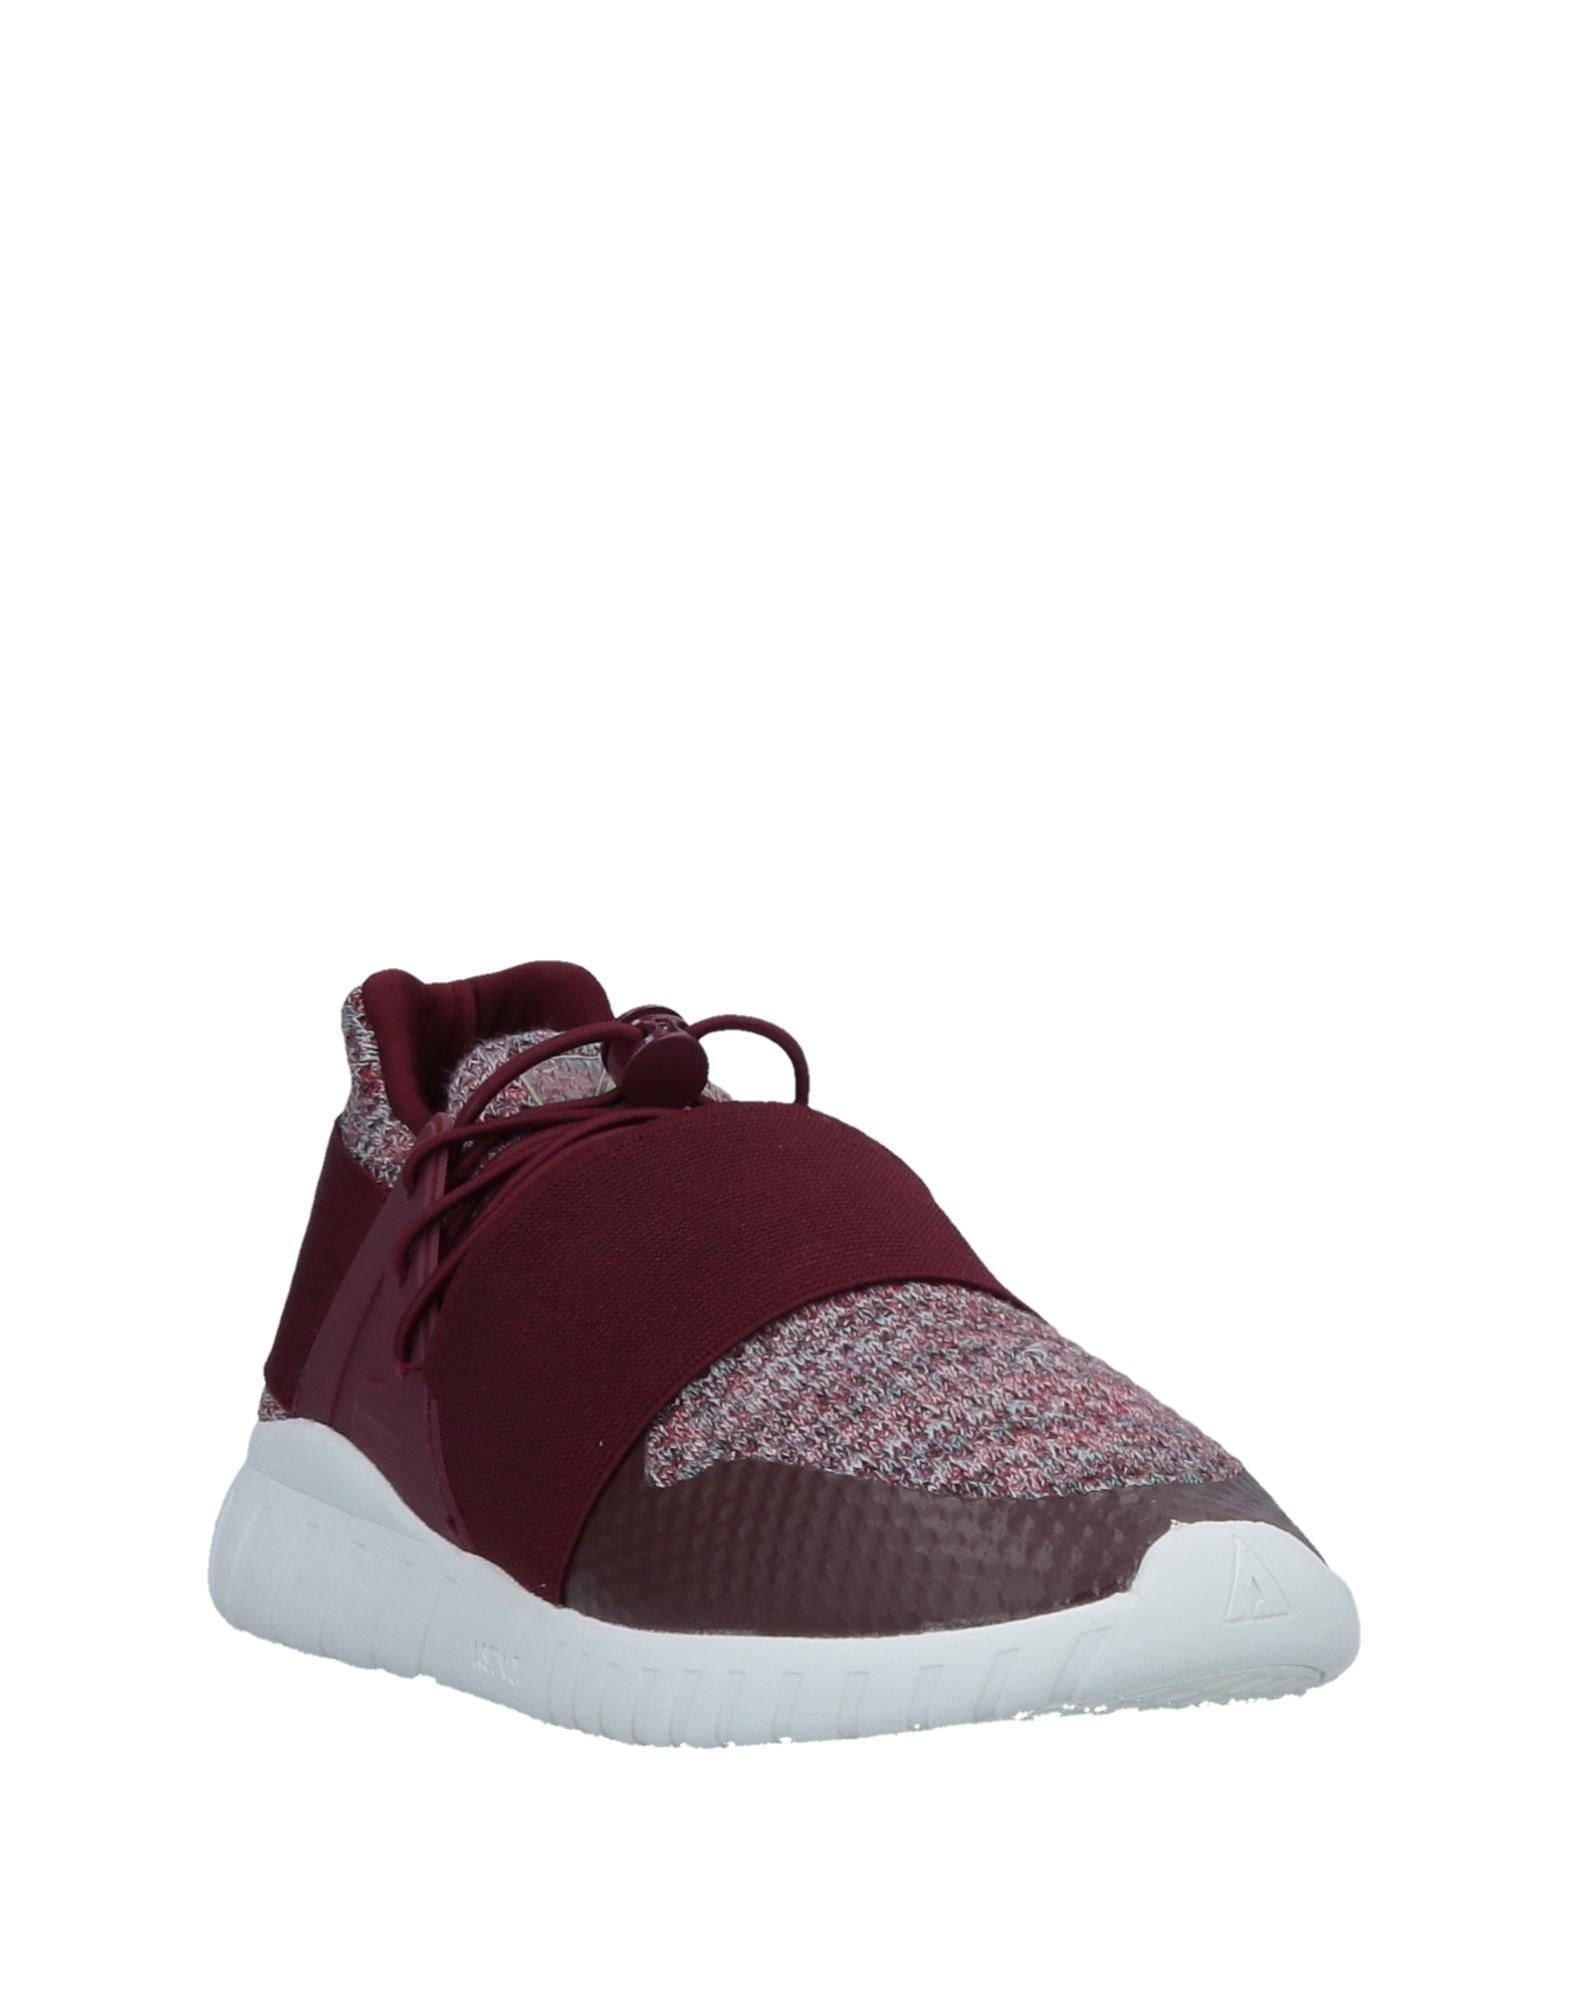 Asfvlt Sneakers - - - Women Asfvlt Sneakers online on  United Kingdom - 11506962GL 45e0a9